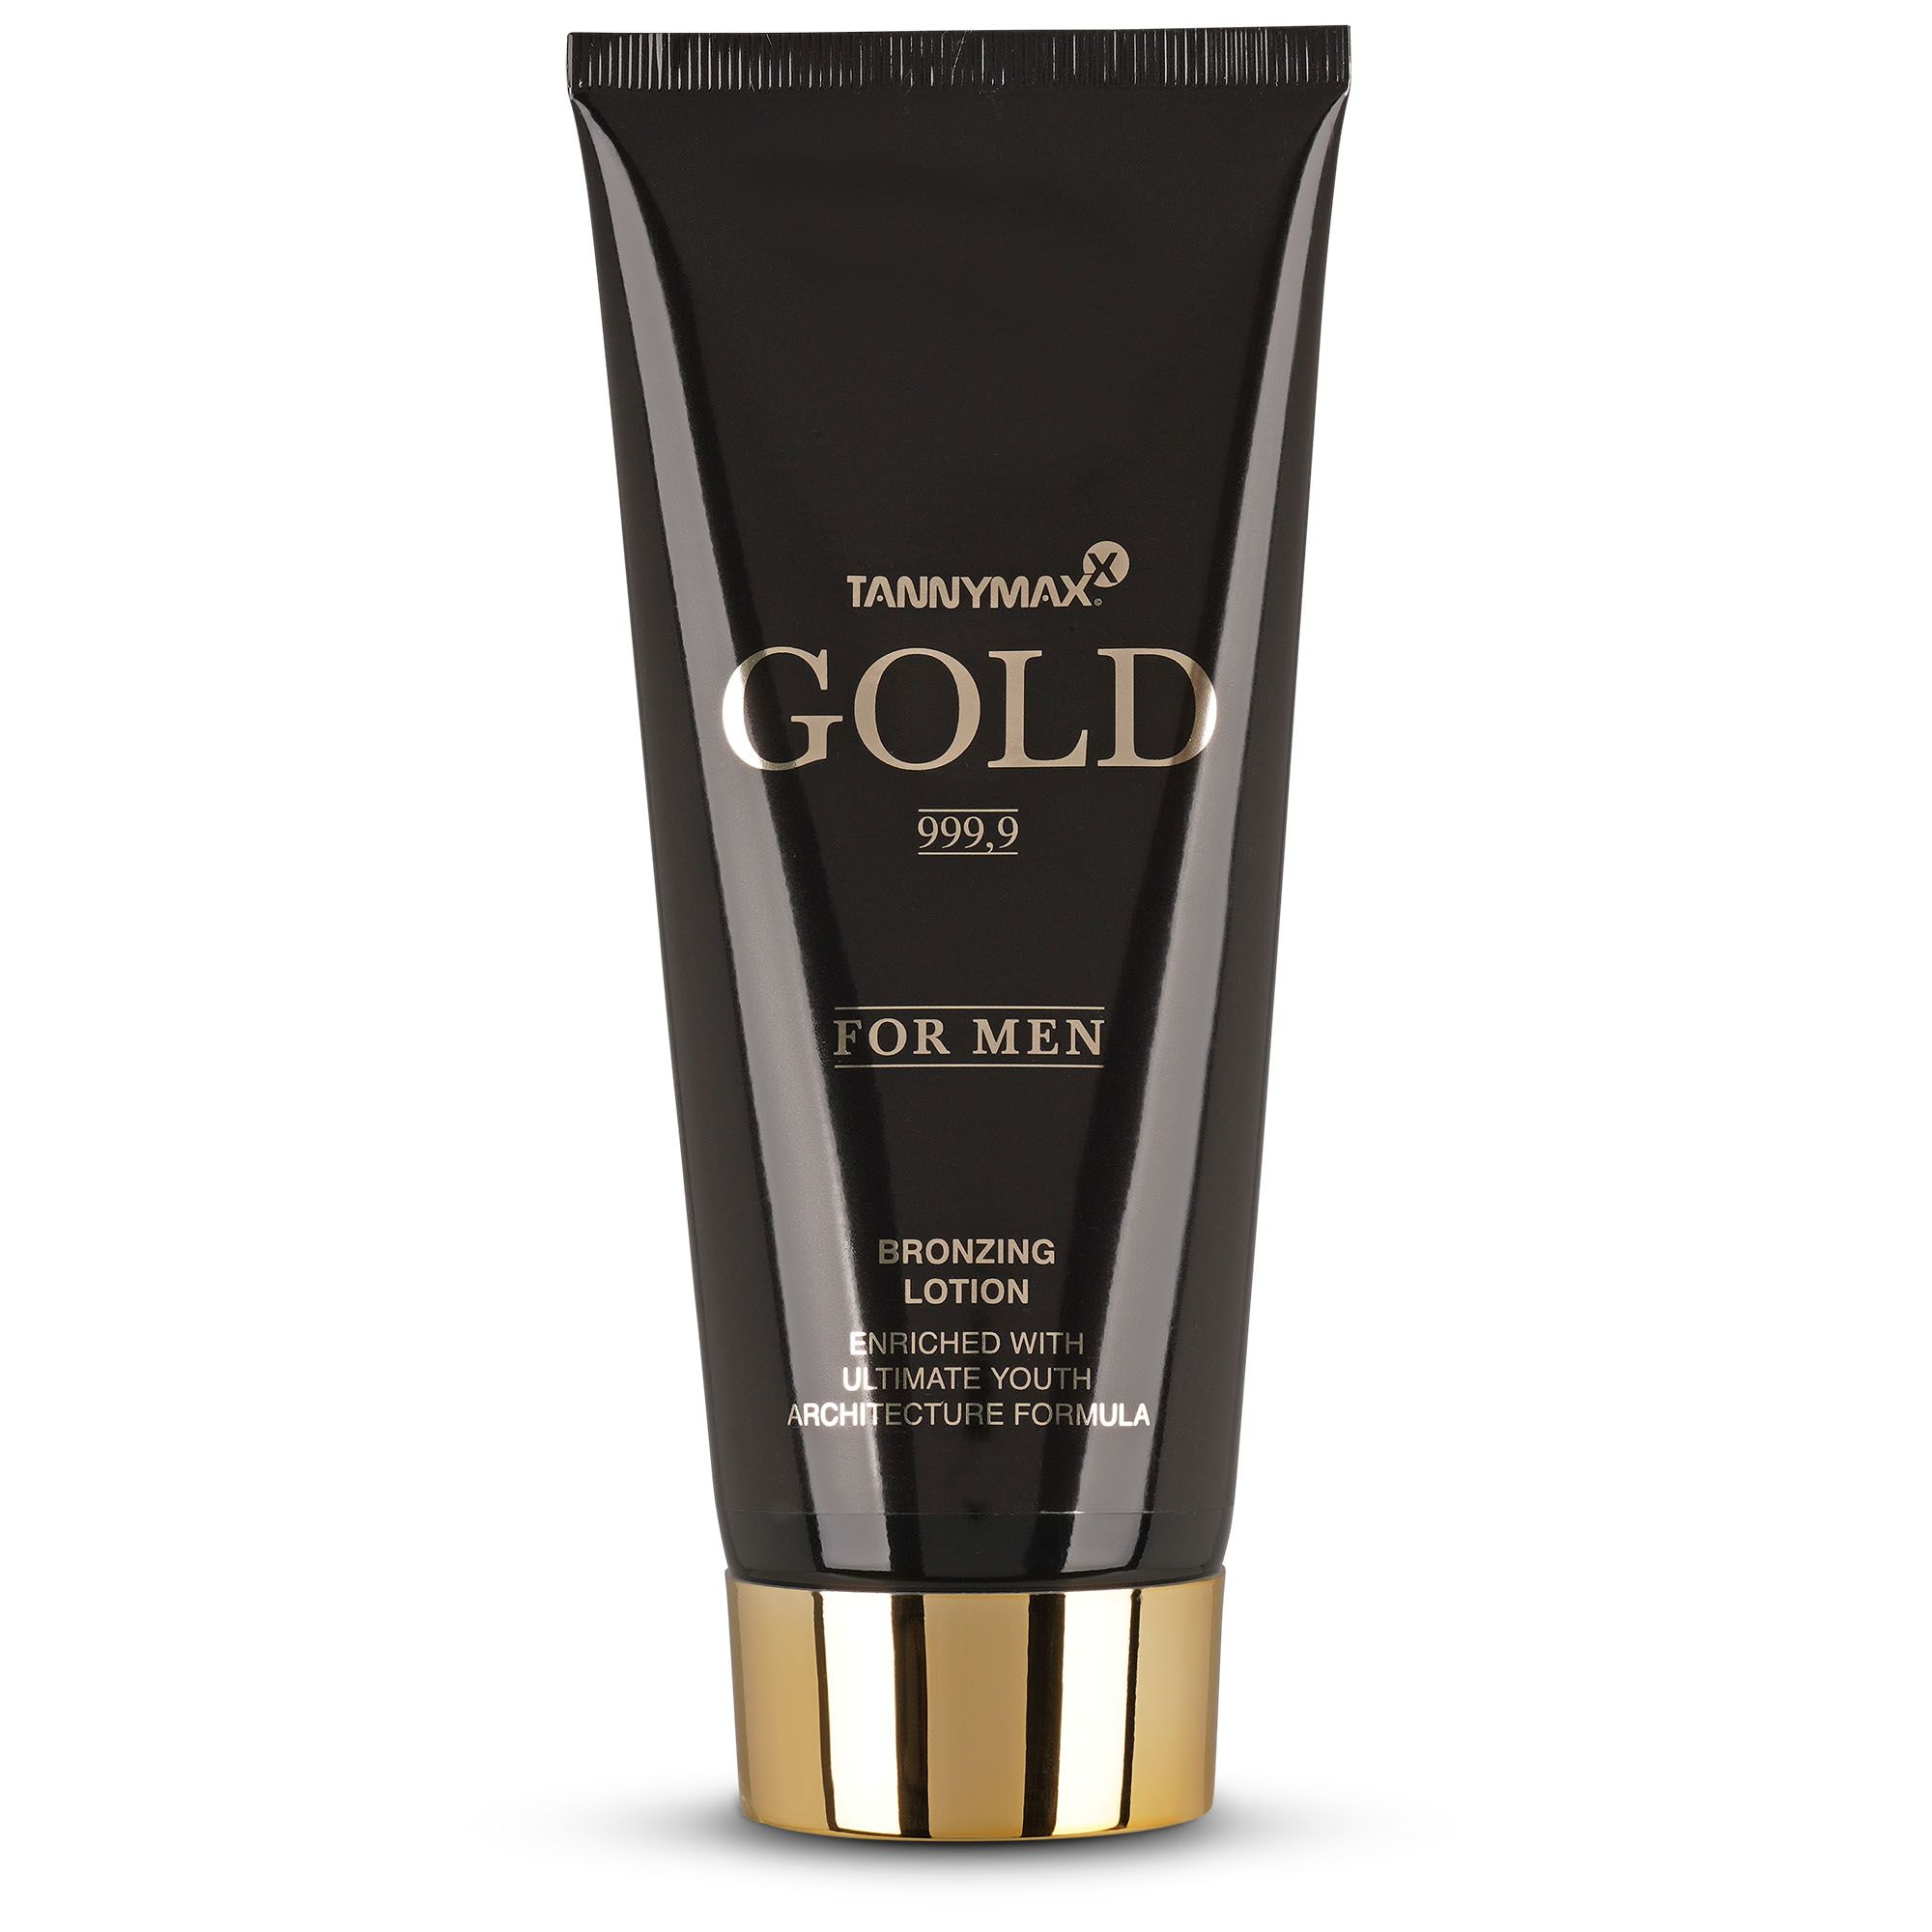 Tannymaxx Gold 999,9 For Men Bronzing 200ml